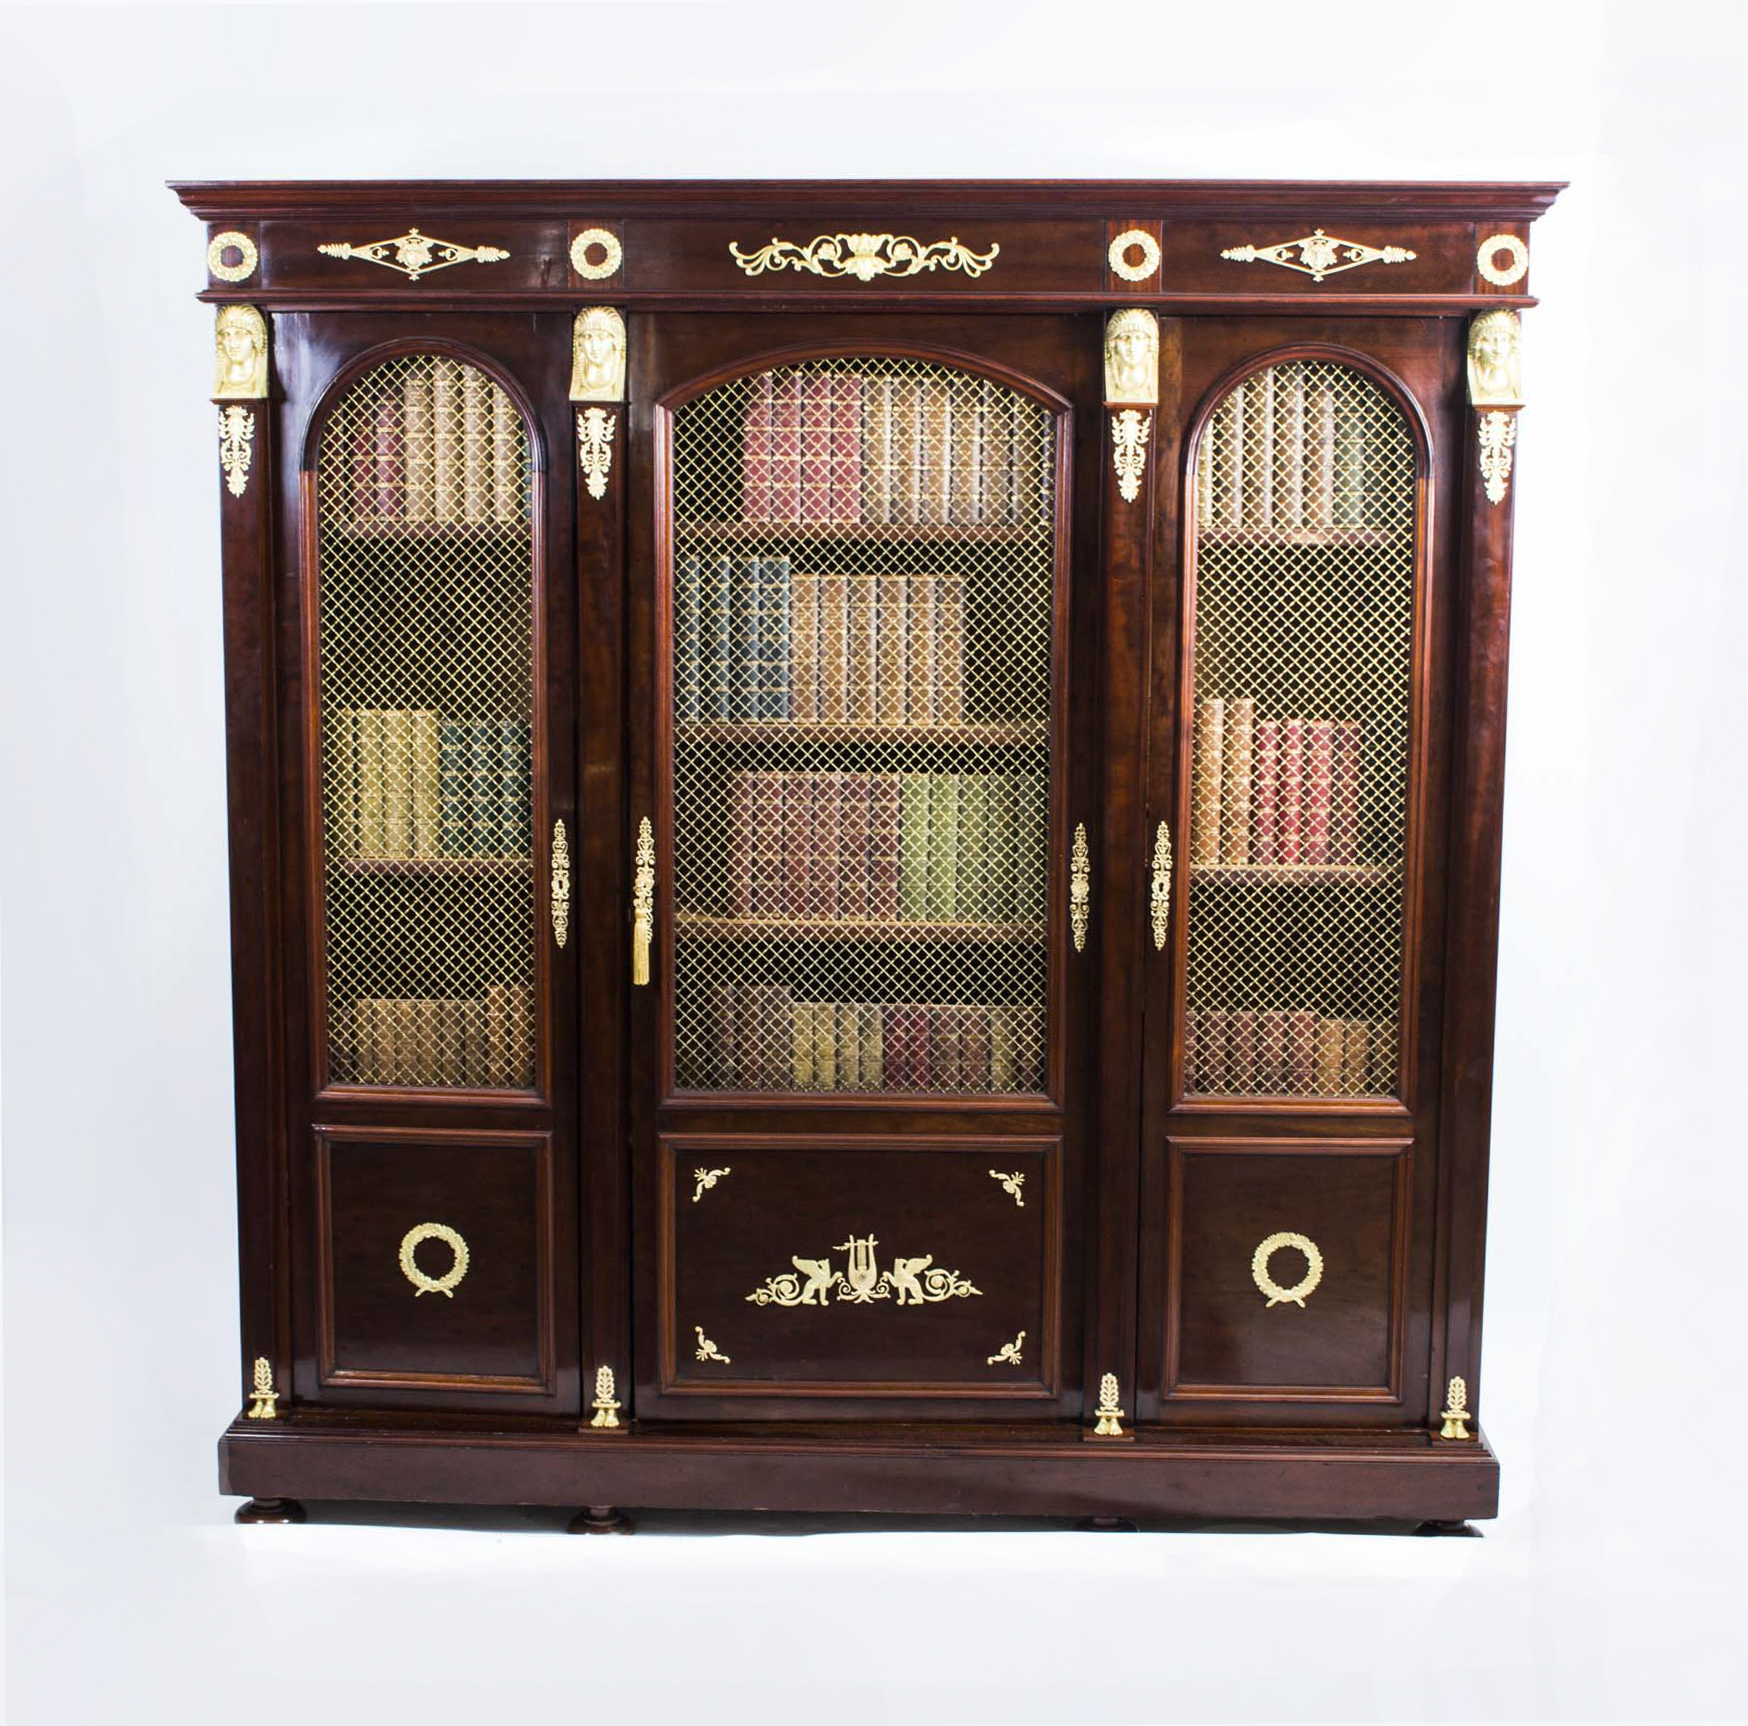 Antique French Empire Mahogany Bookcase Cabinet c.1840